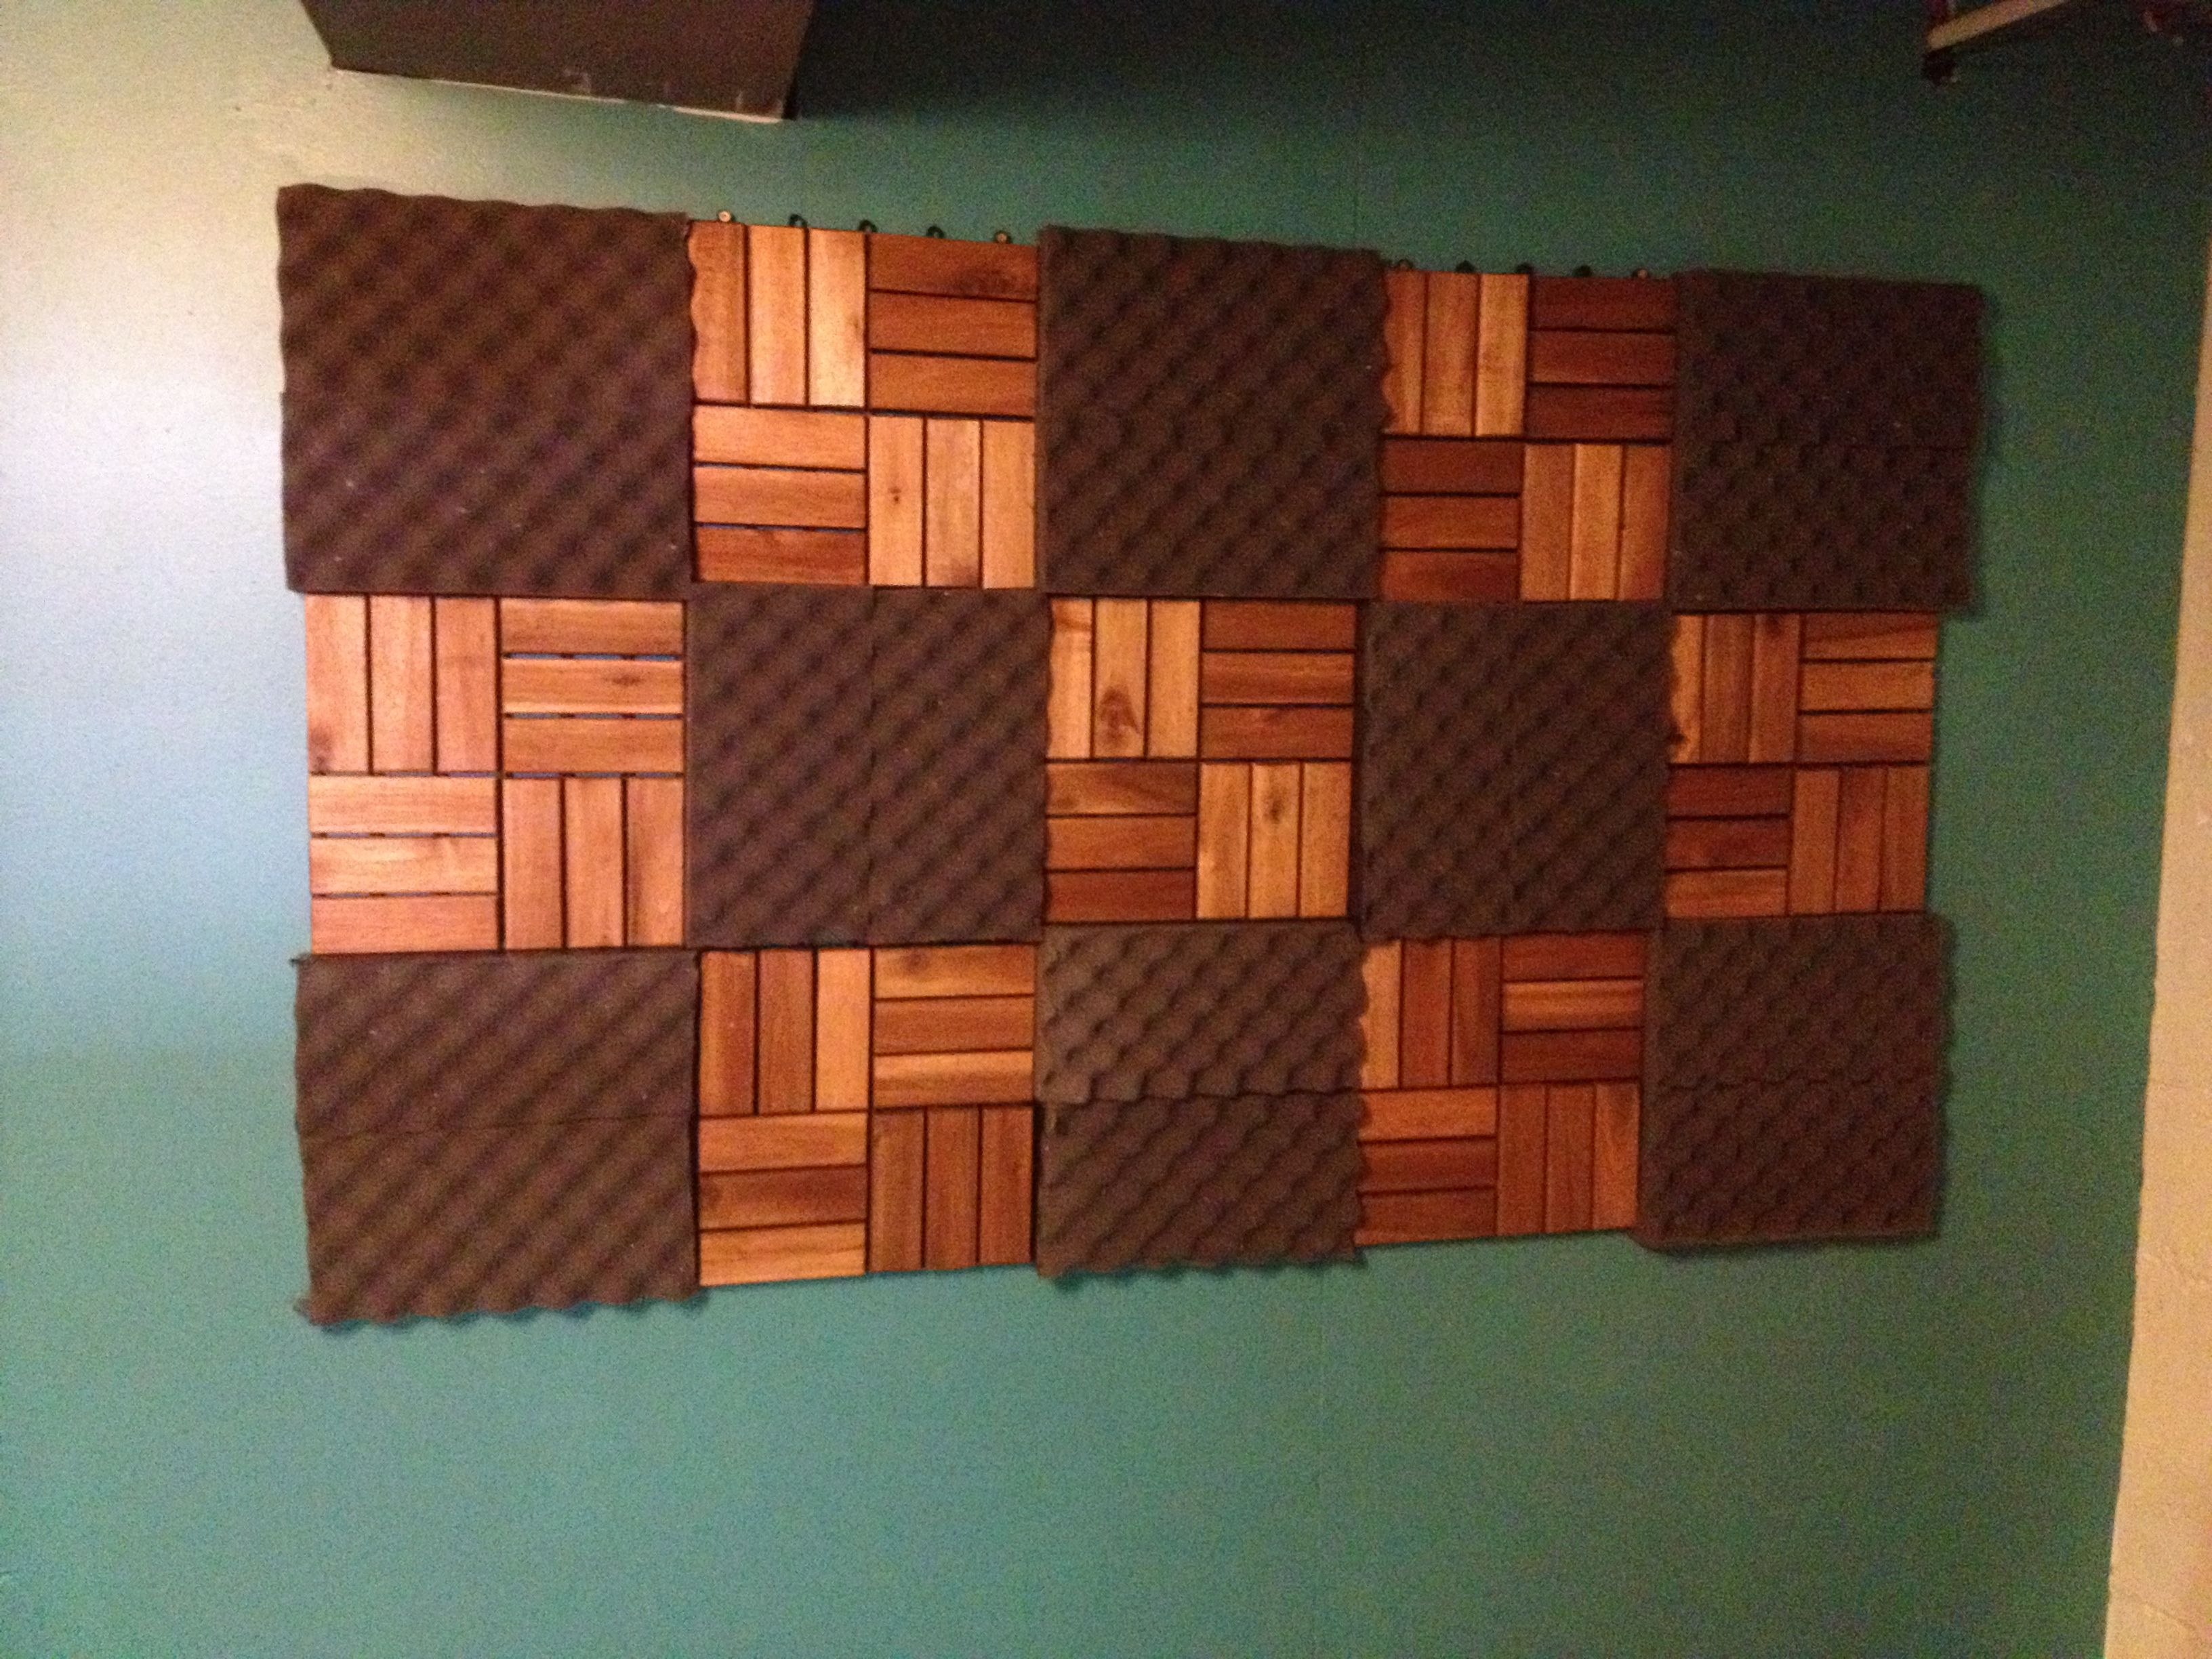 New Acoustic Treatment In My Basement Studio   Cedar Deck Tiles And  Egg Carton